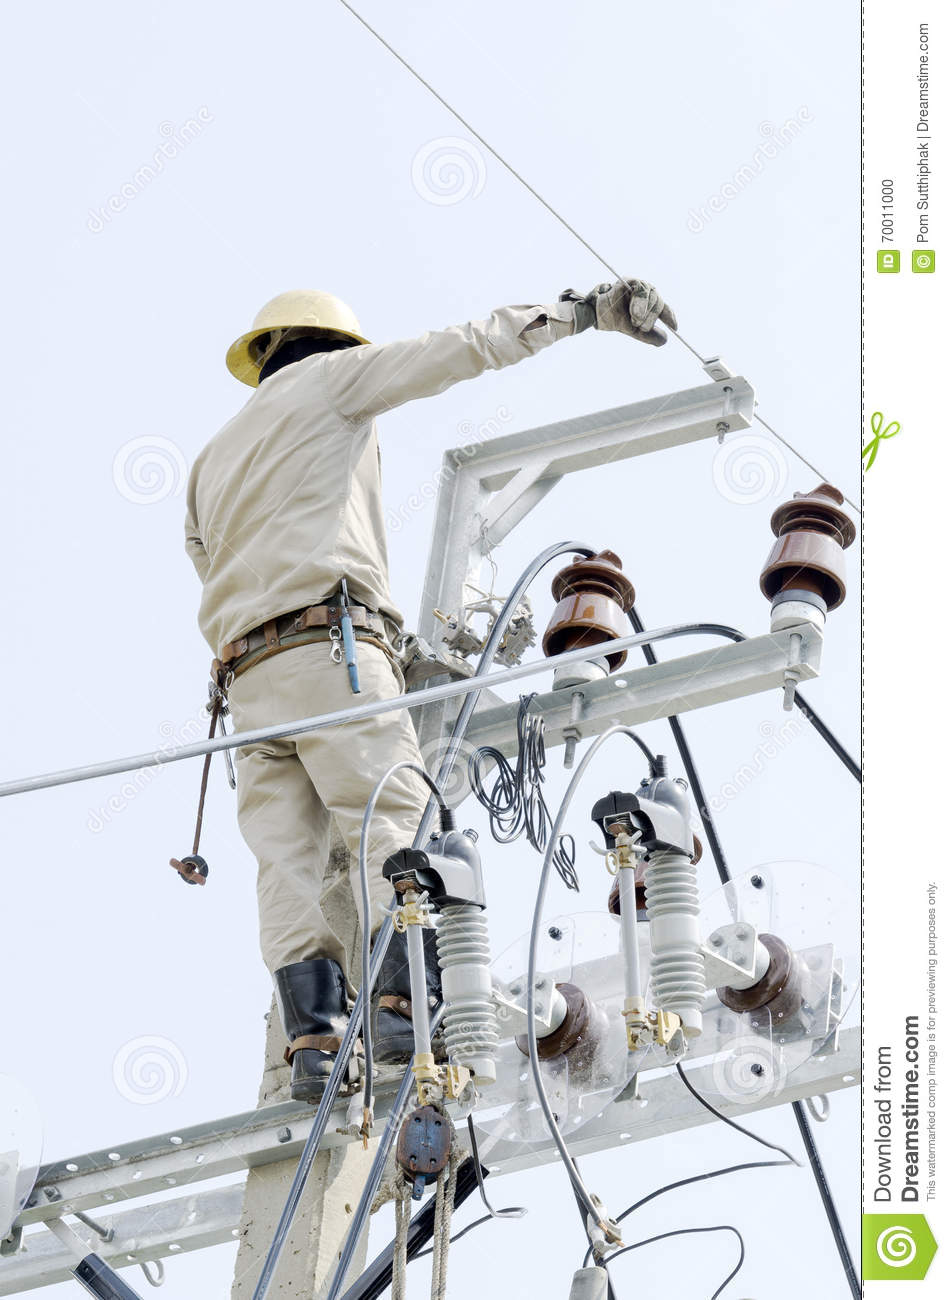 One Electrician Is Repairing Wire On Electric Power Pole